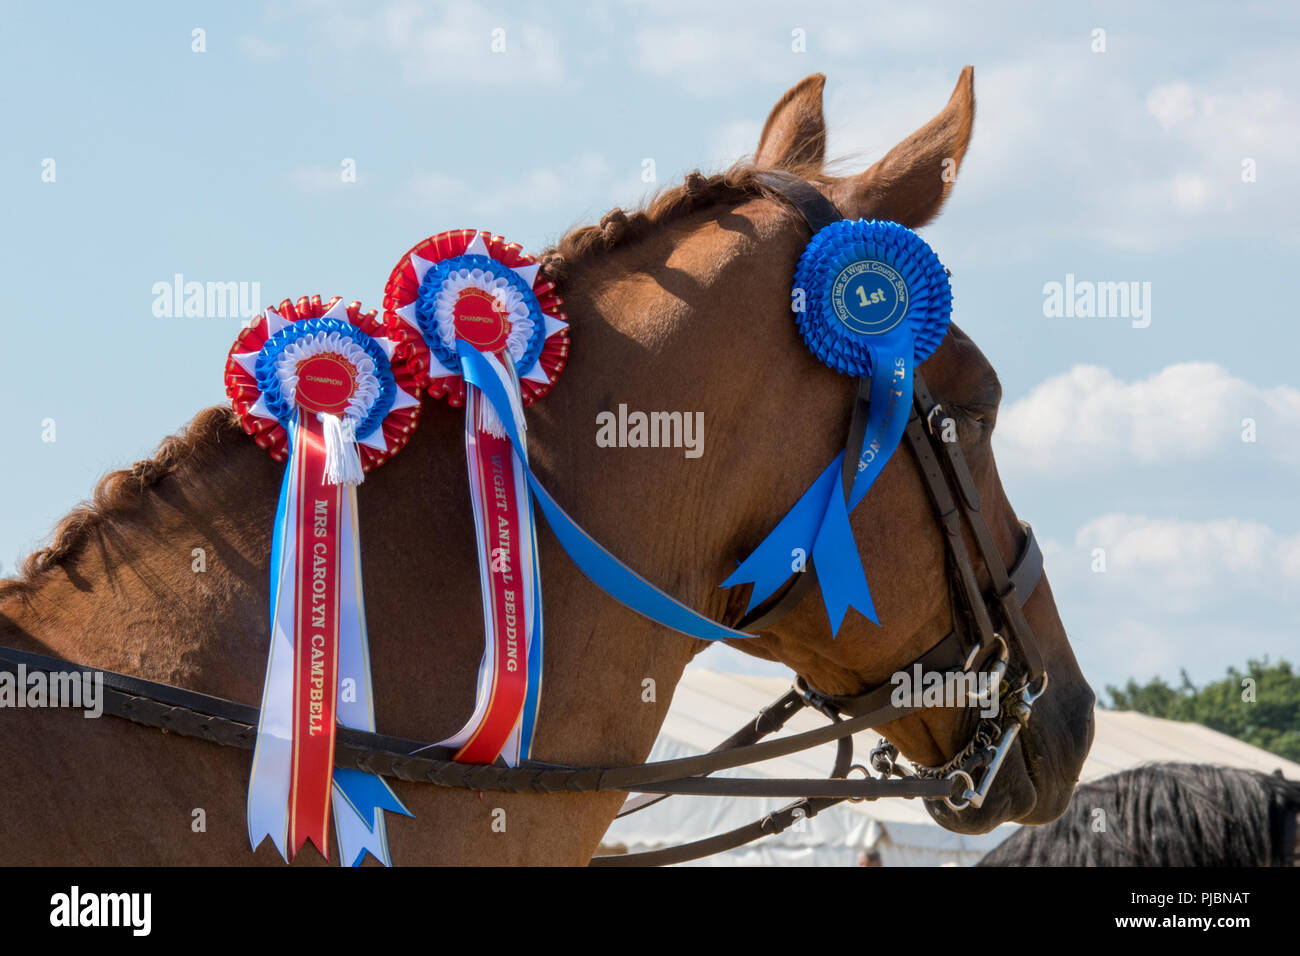 a bay coloured horse with winning prize rosettes at a horse or equestrian showjumping event. - Stock Image